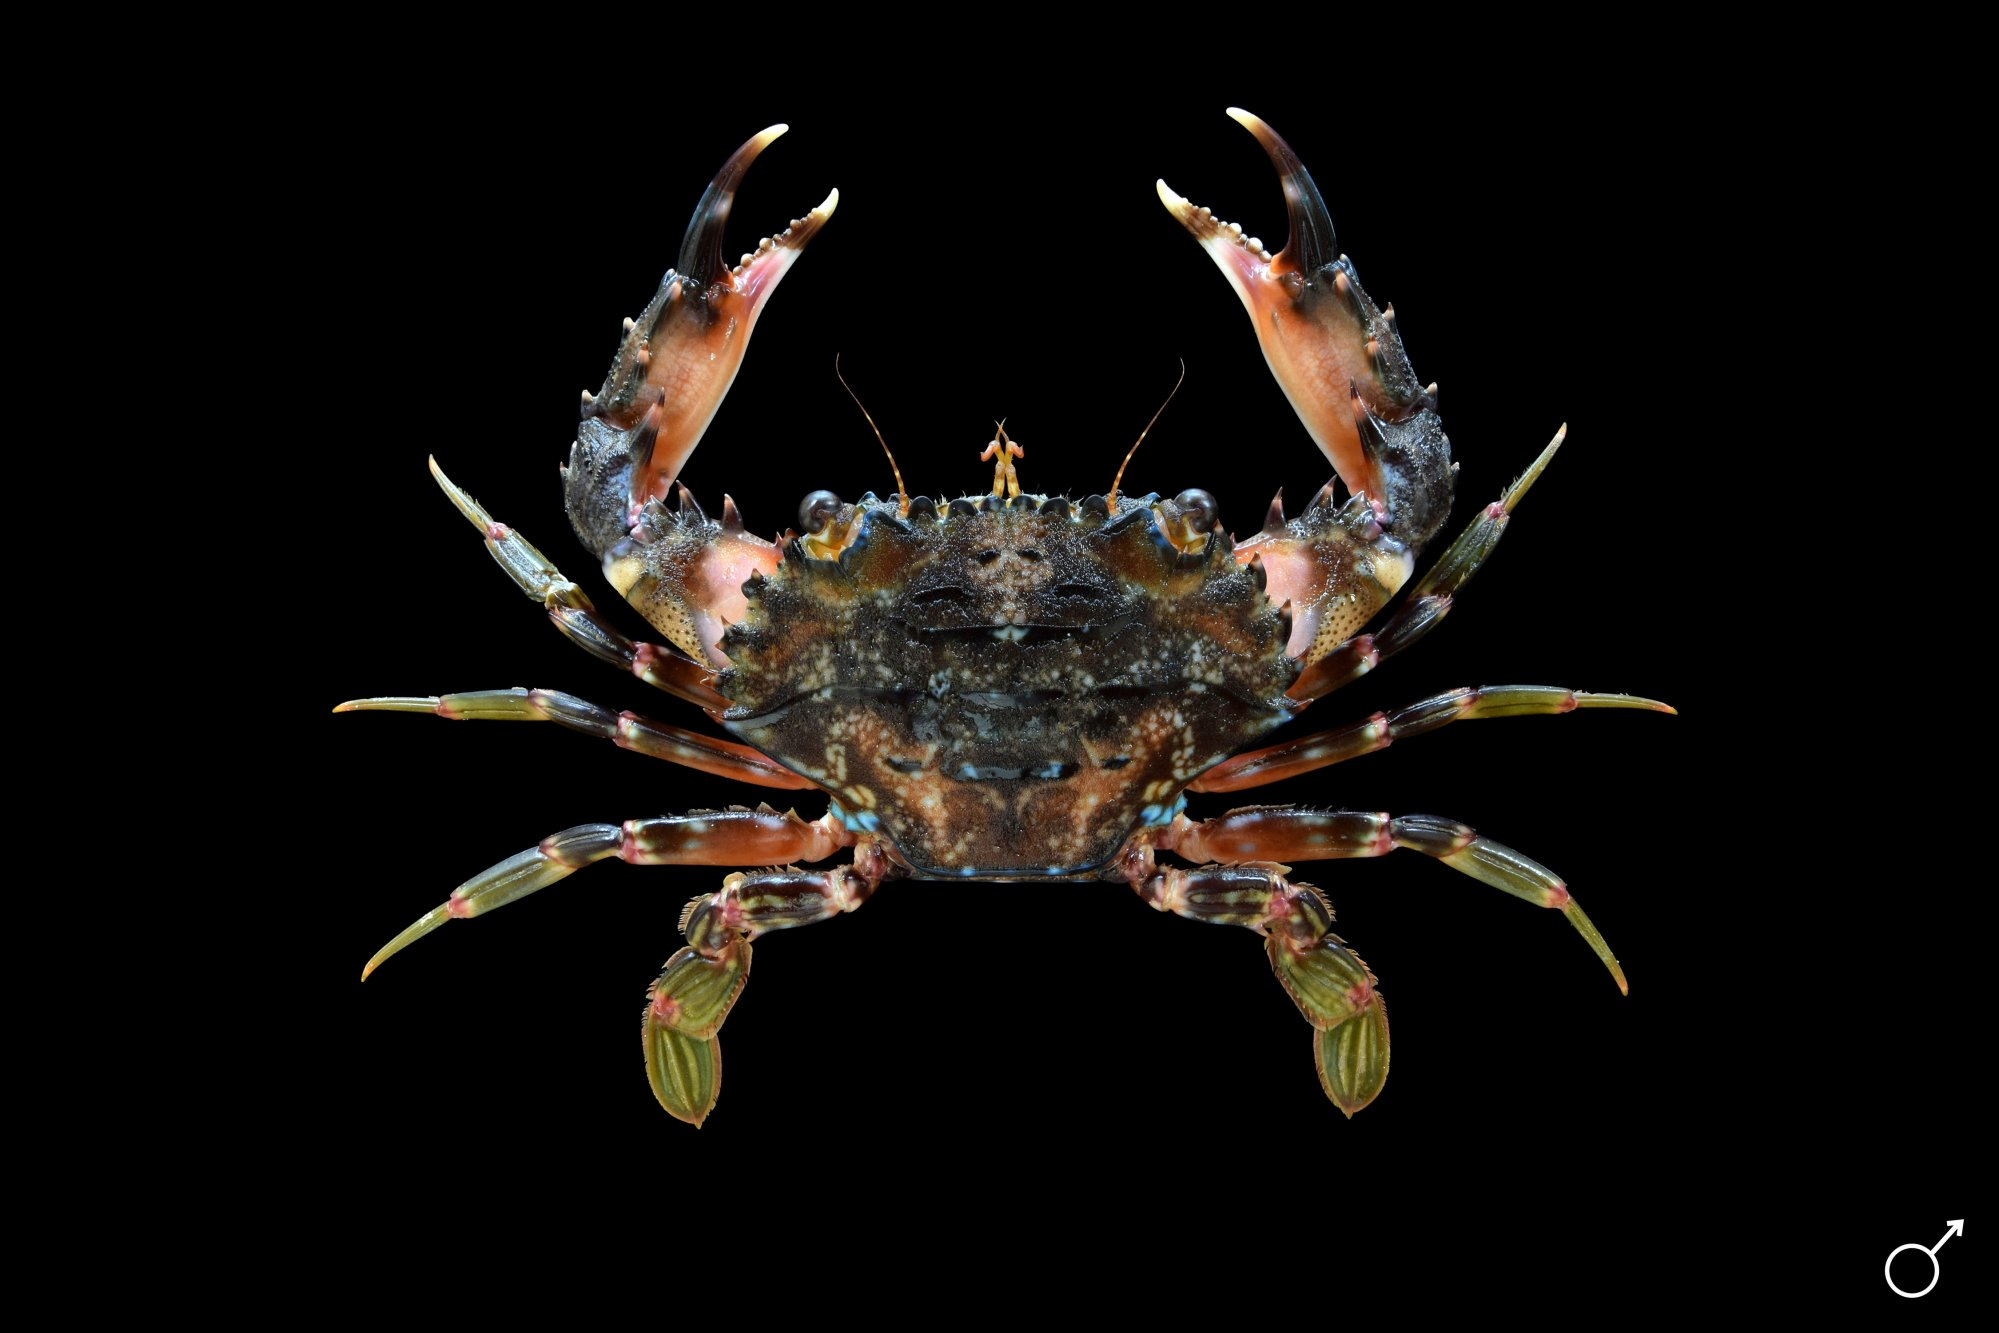 crabs of the genus scylla Among the crustacean candidate species for aquaculture, mud crabs of the genus scylla are gaining importance as alternative to tiger shrimp especially in the asian scenario, in the context of consecutive white spot disease outbreaks rendering shrimp culture, a risky affair.